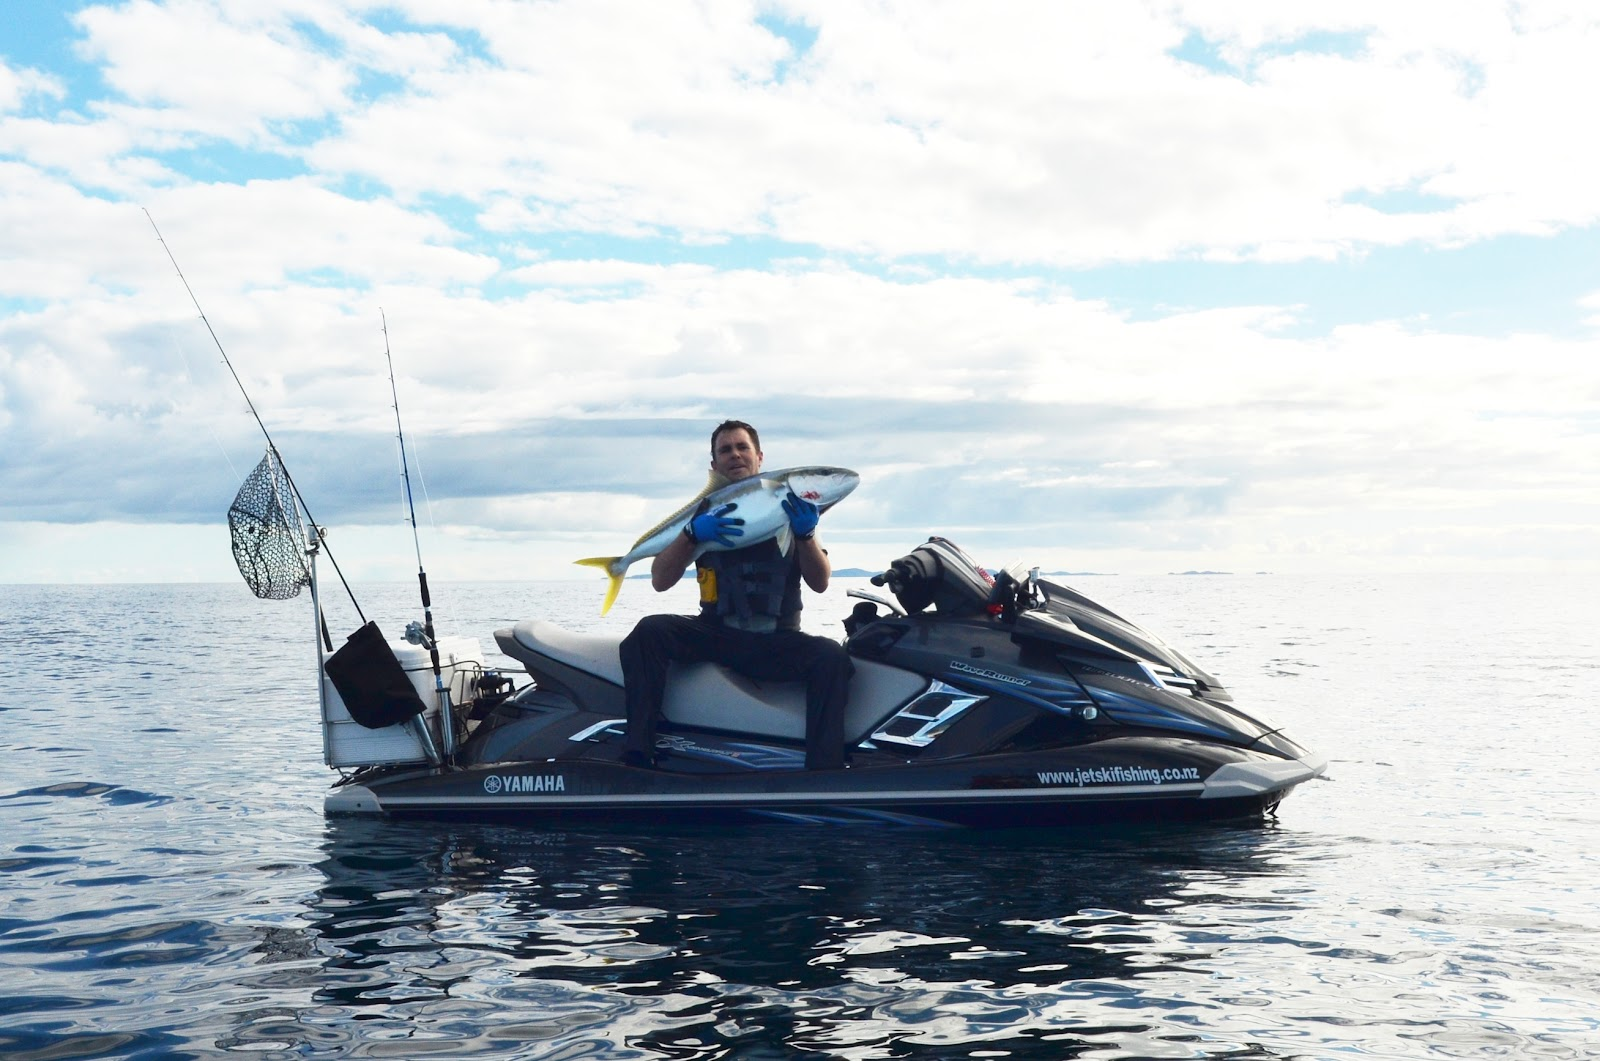 Jet ski fishing blog september 2012 for Best jet ski for fishing